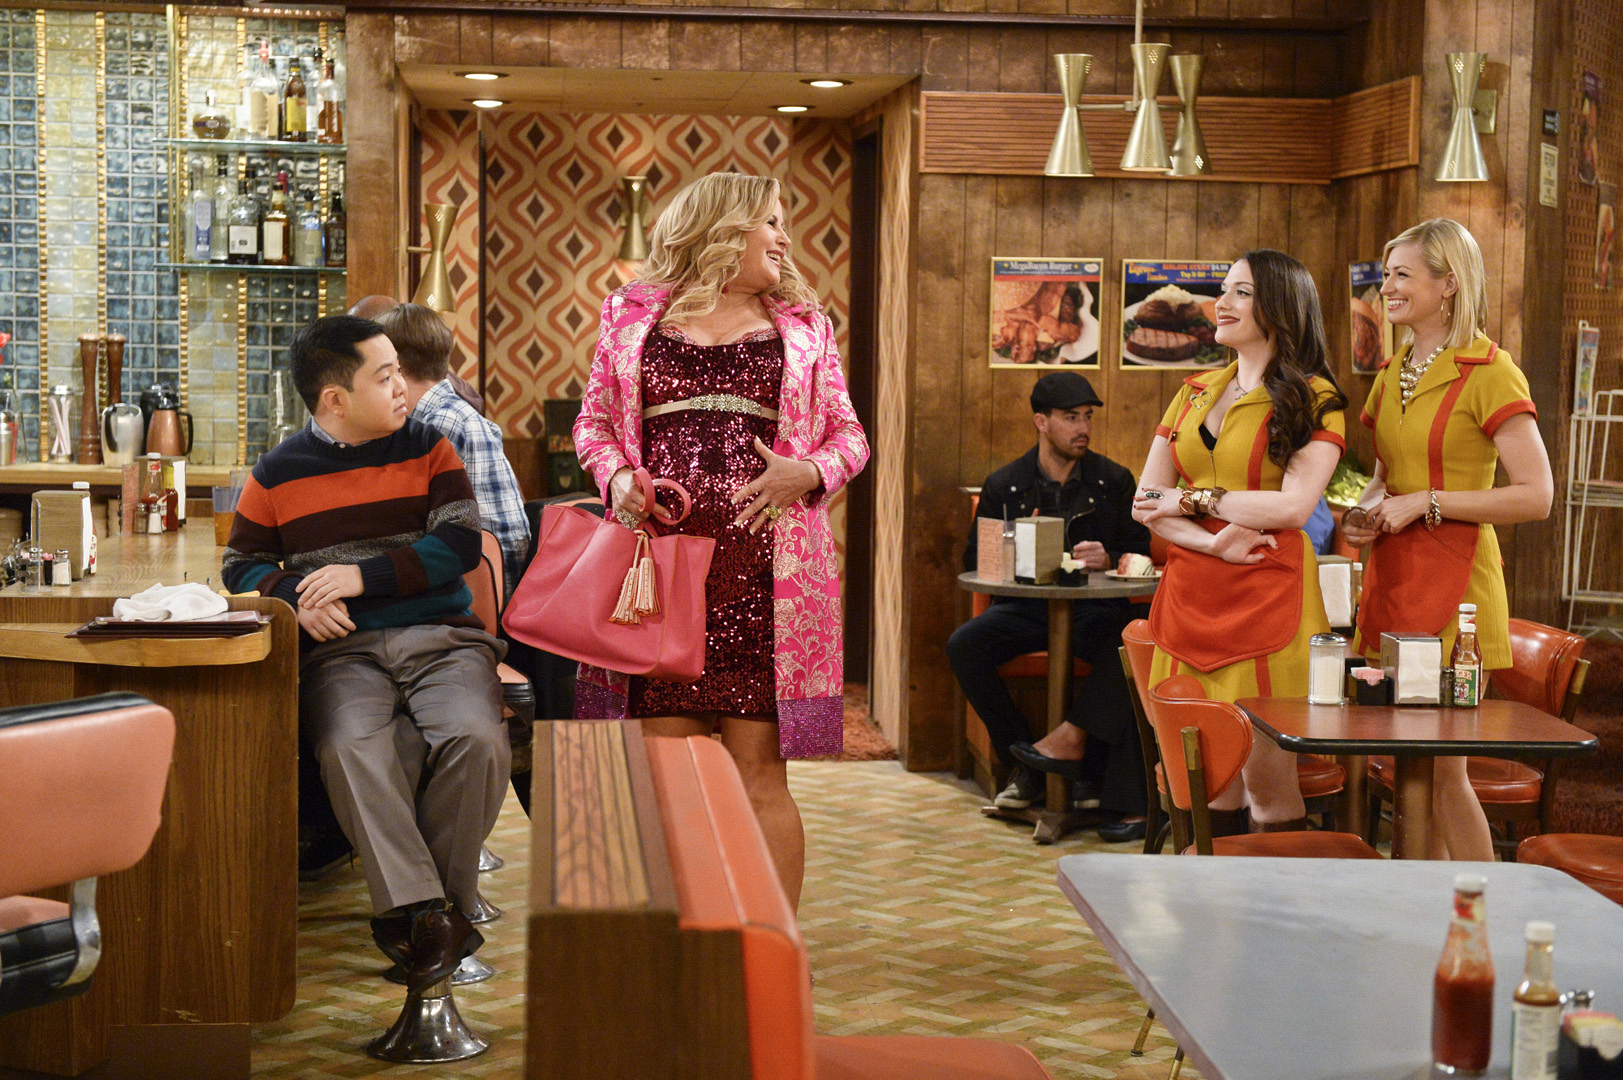 2 Broke Girls returns for a 6th season with a 1-hour premiere on Monday, Oct. 10 at 9/8c.